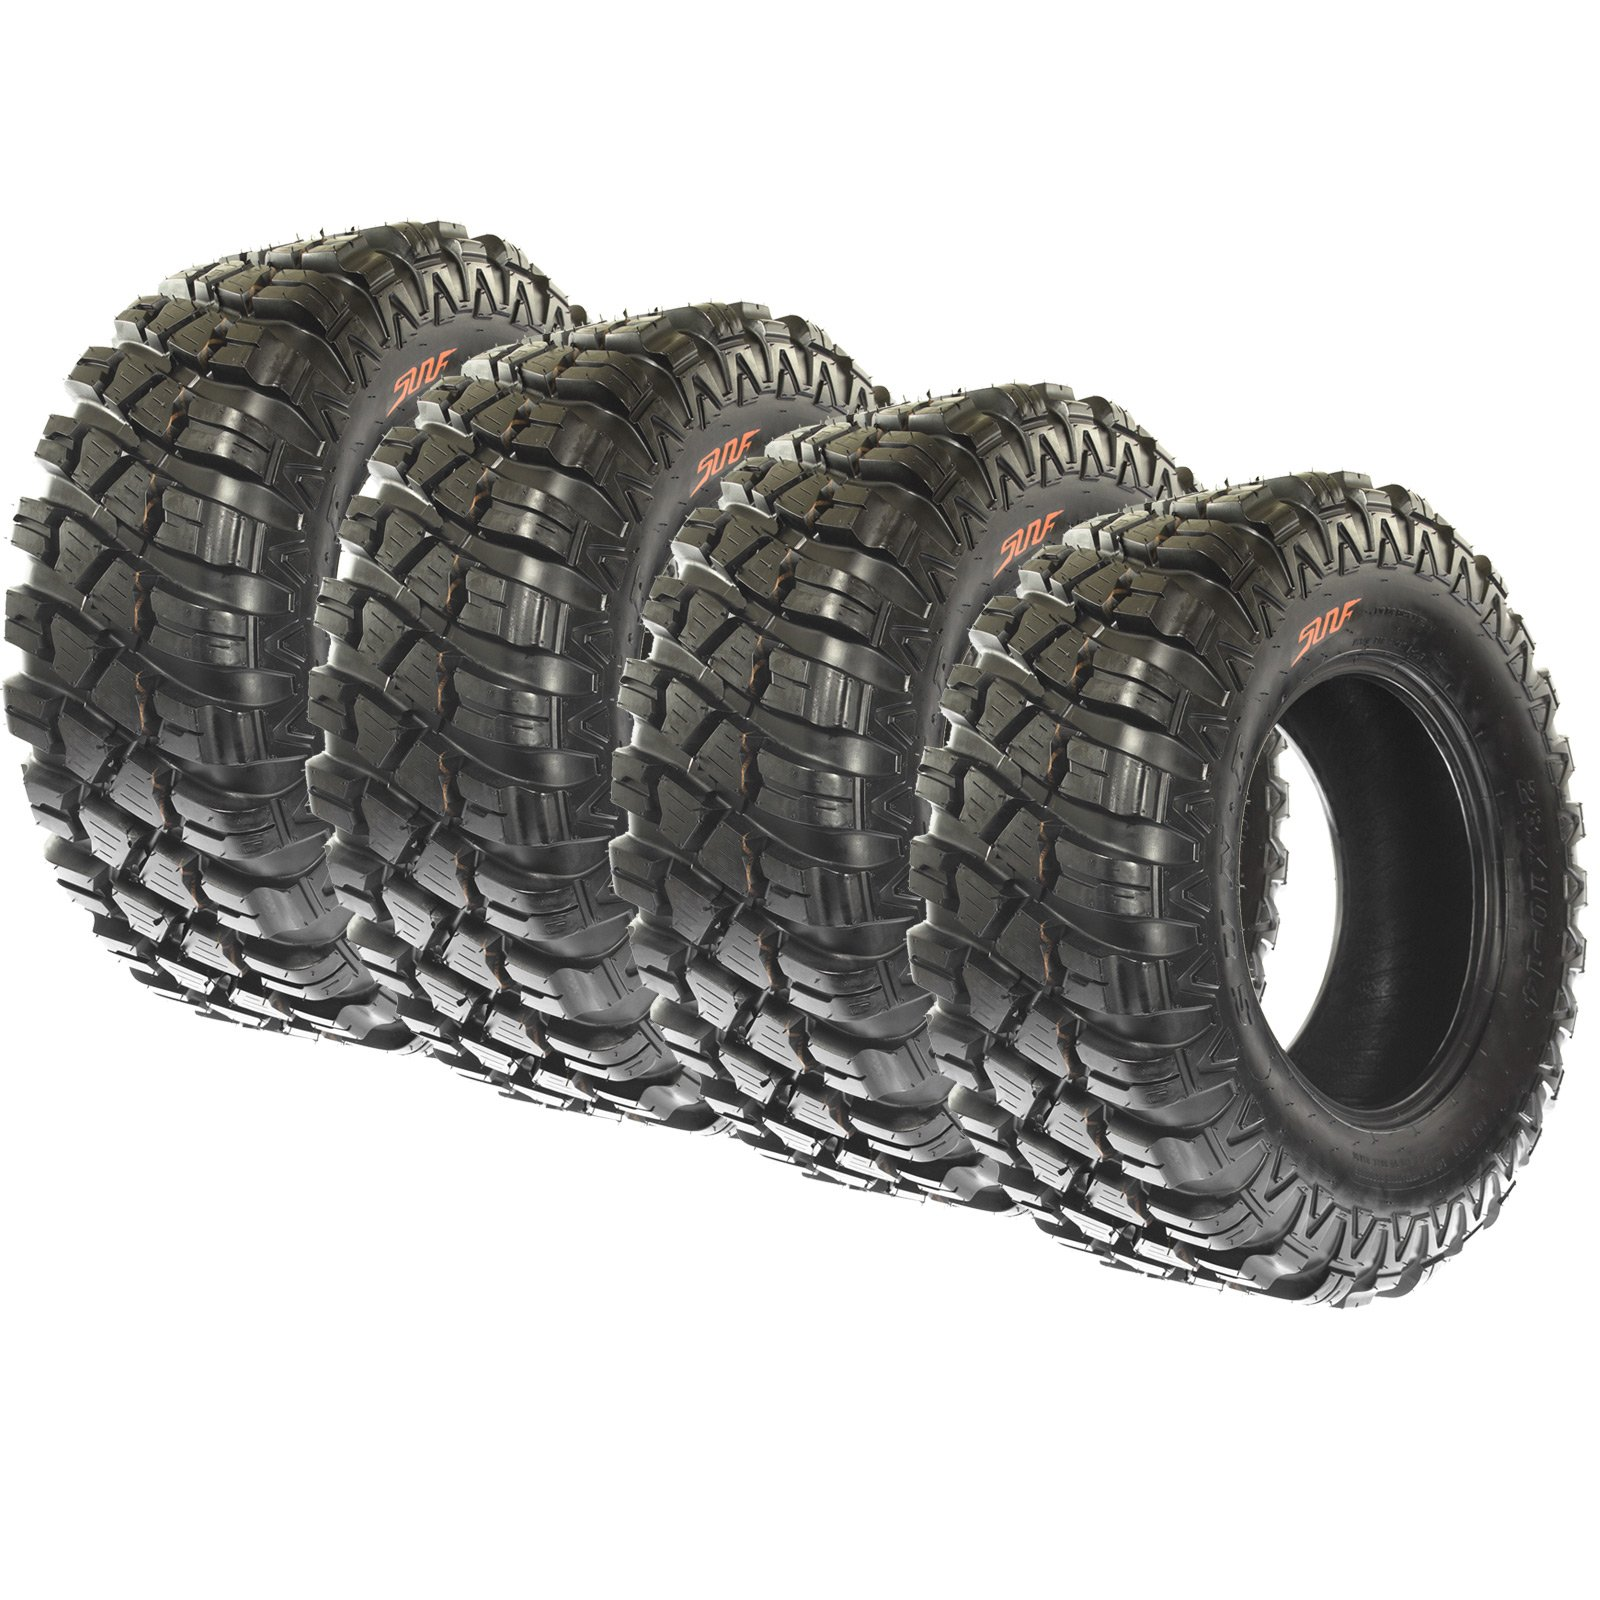 SunF Set of 4 A047 All Terrain Trail ATV UTV Tires 28x10-14, 8 Ply